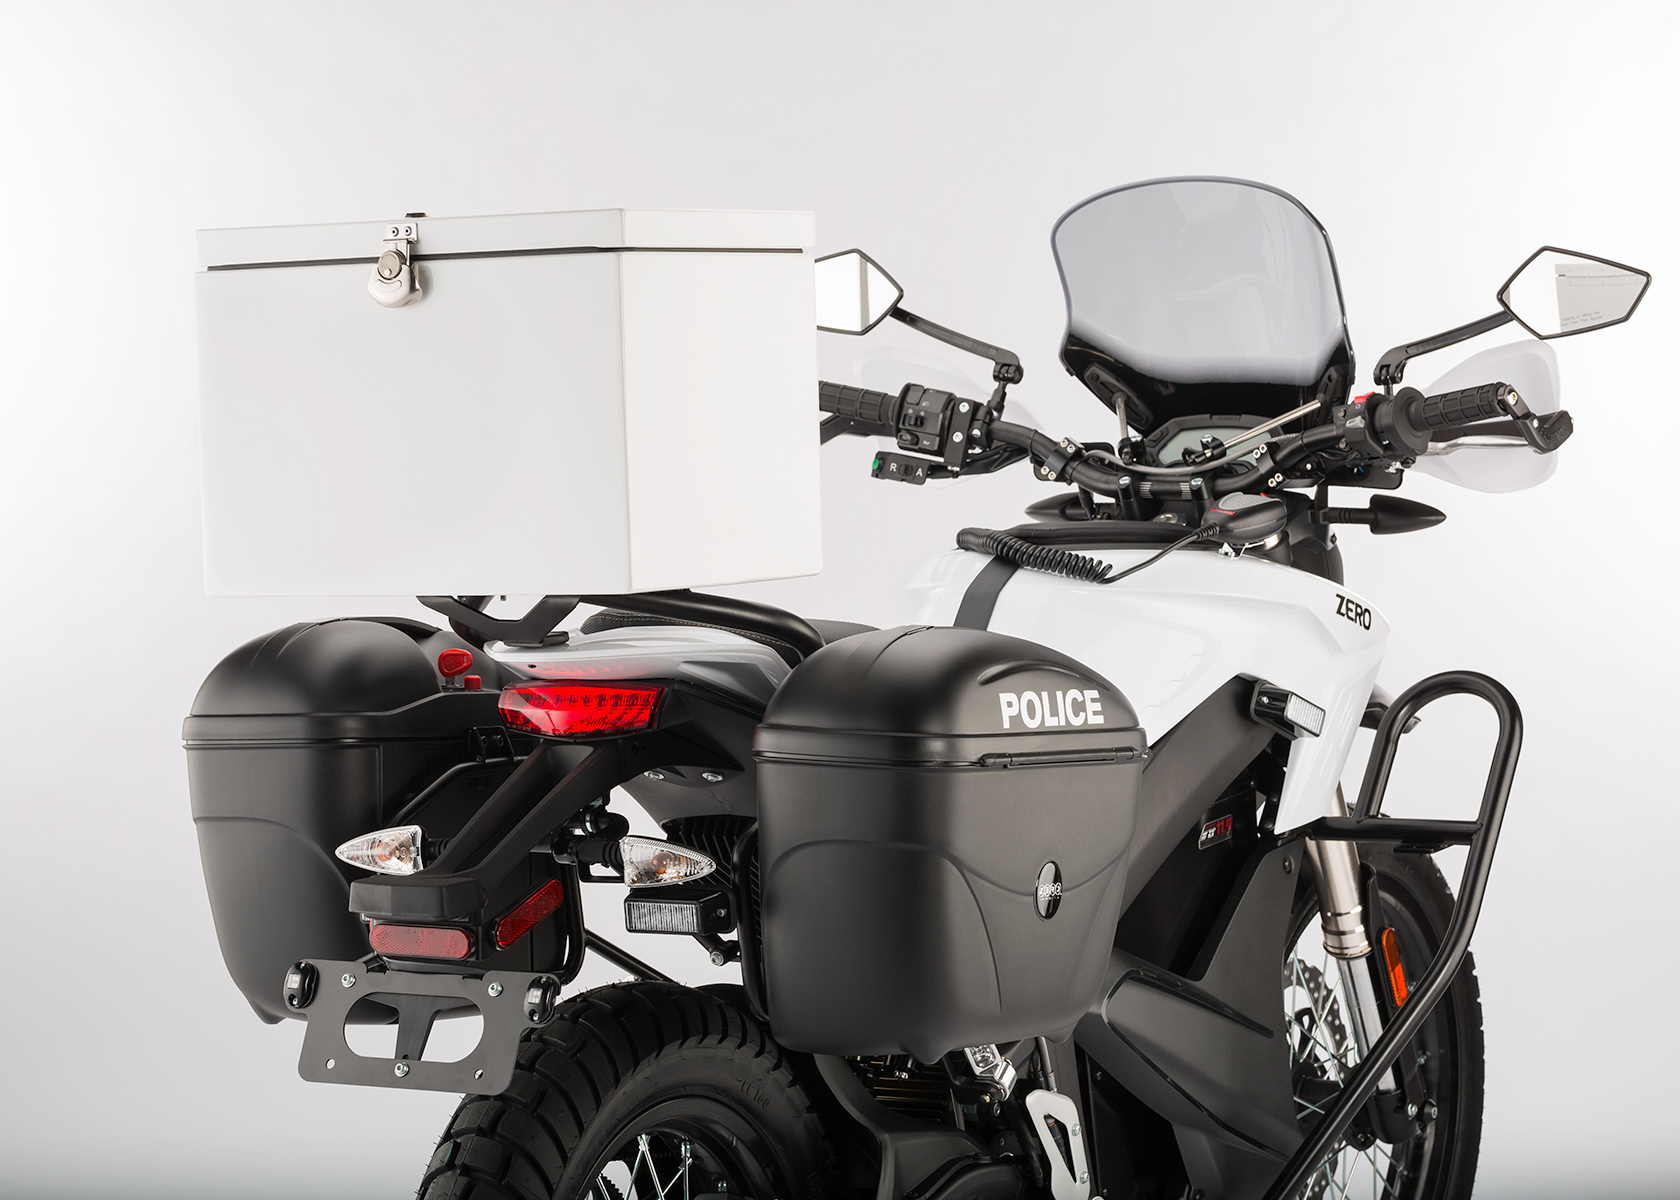 2014 Zero Police Electric Motorcycle: Courier Box